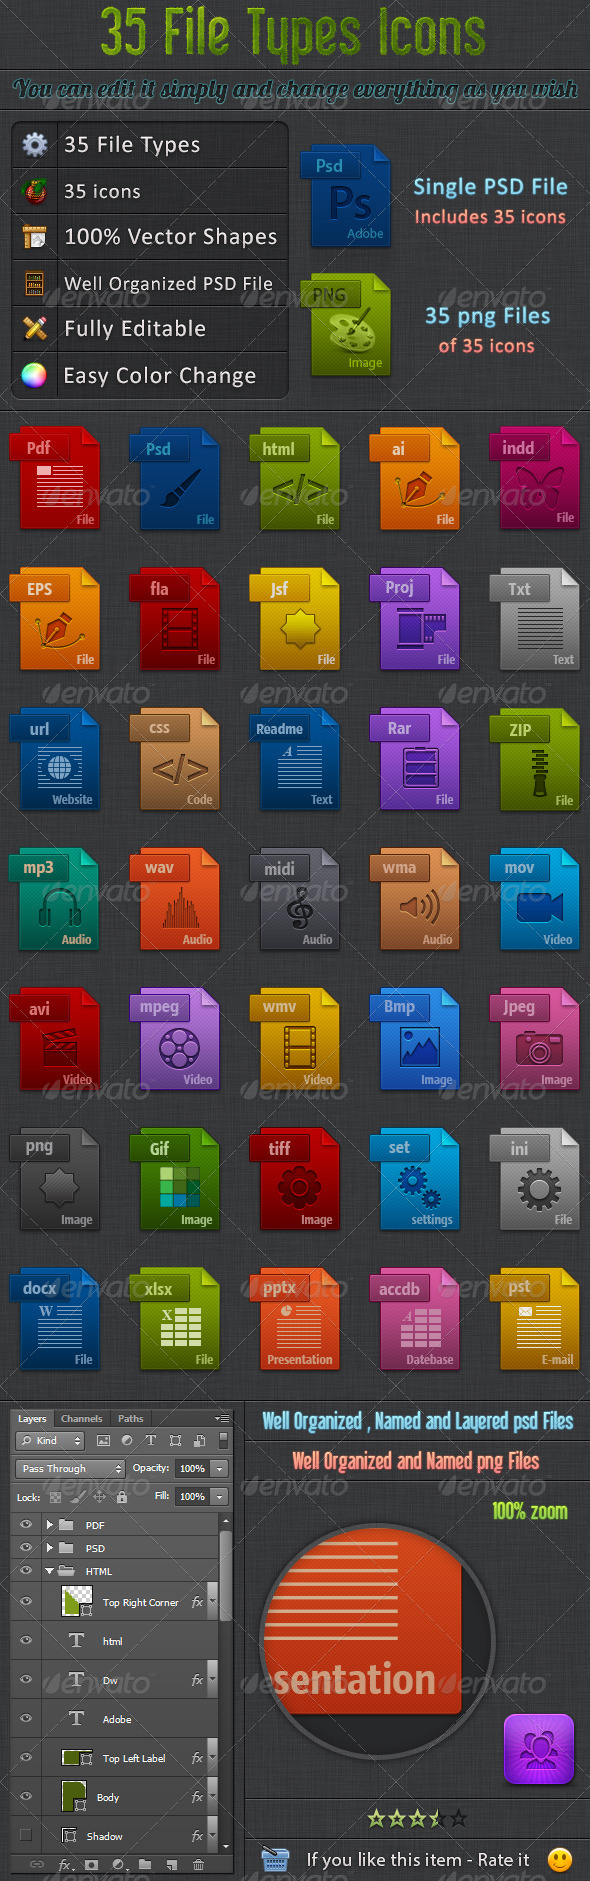 GraphicRiver 35 File Types Icons 5707905